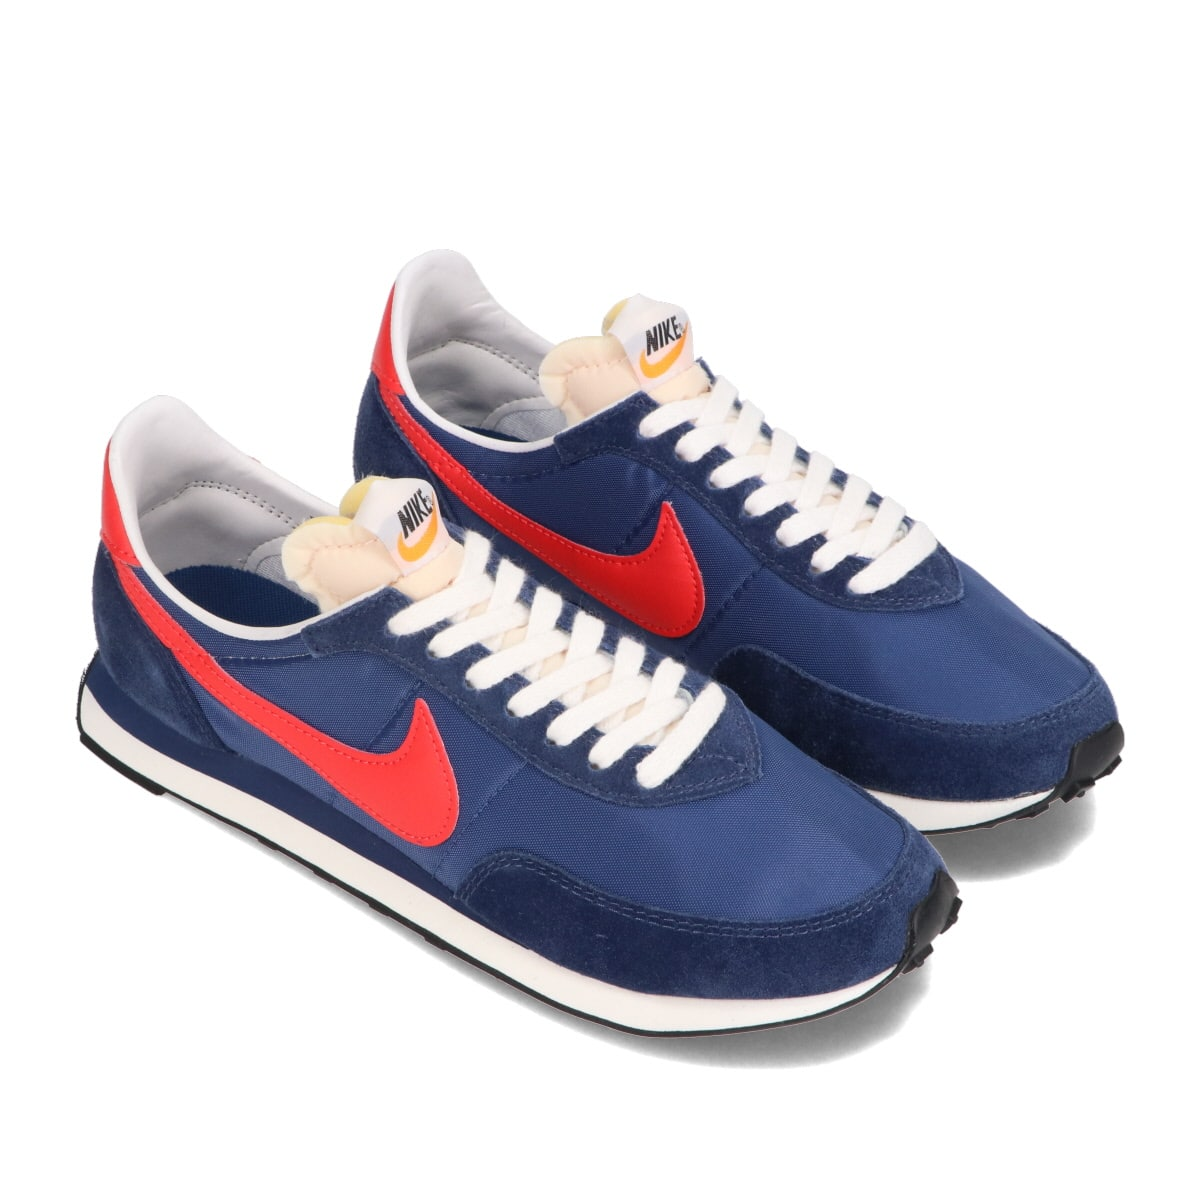 NIKE WAFFLE TRAINER 2 SP MIDNIGHT NAVY/MAX ORANGE-MYSTIC NAVY 21SP-S_photo_large